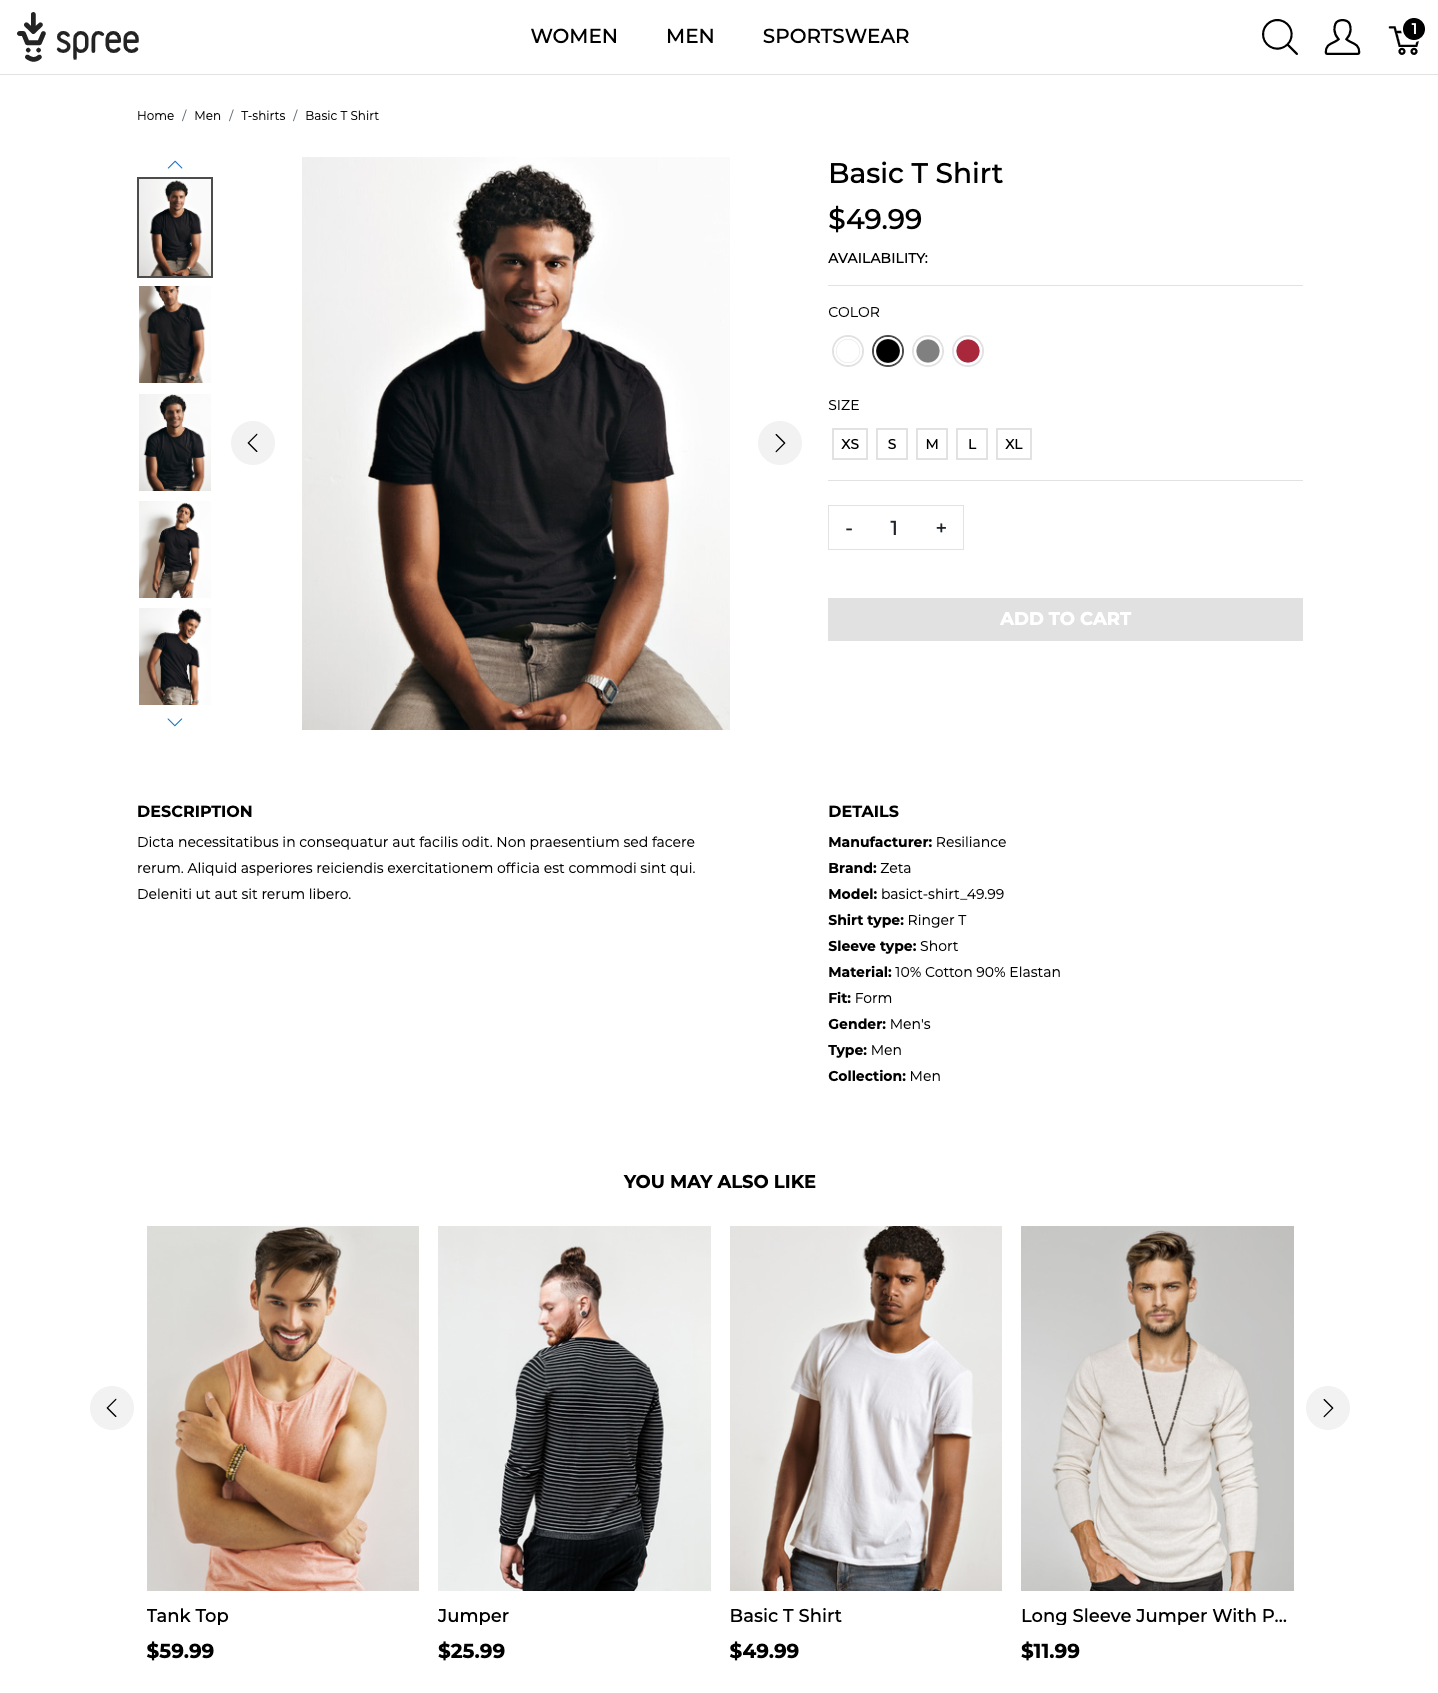 product detail page - Spree online store UX demo